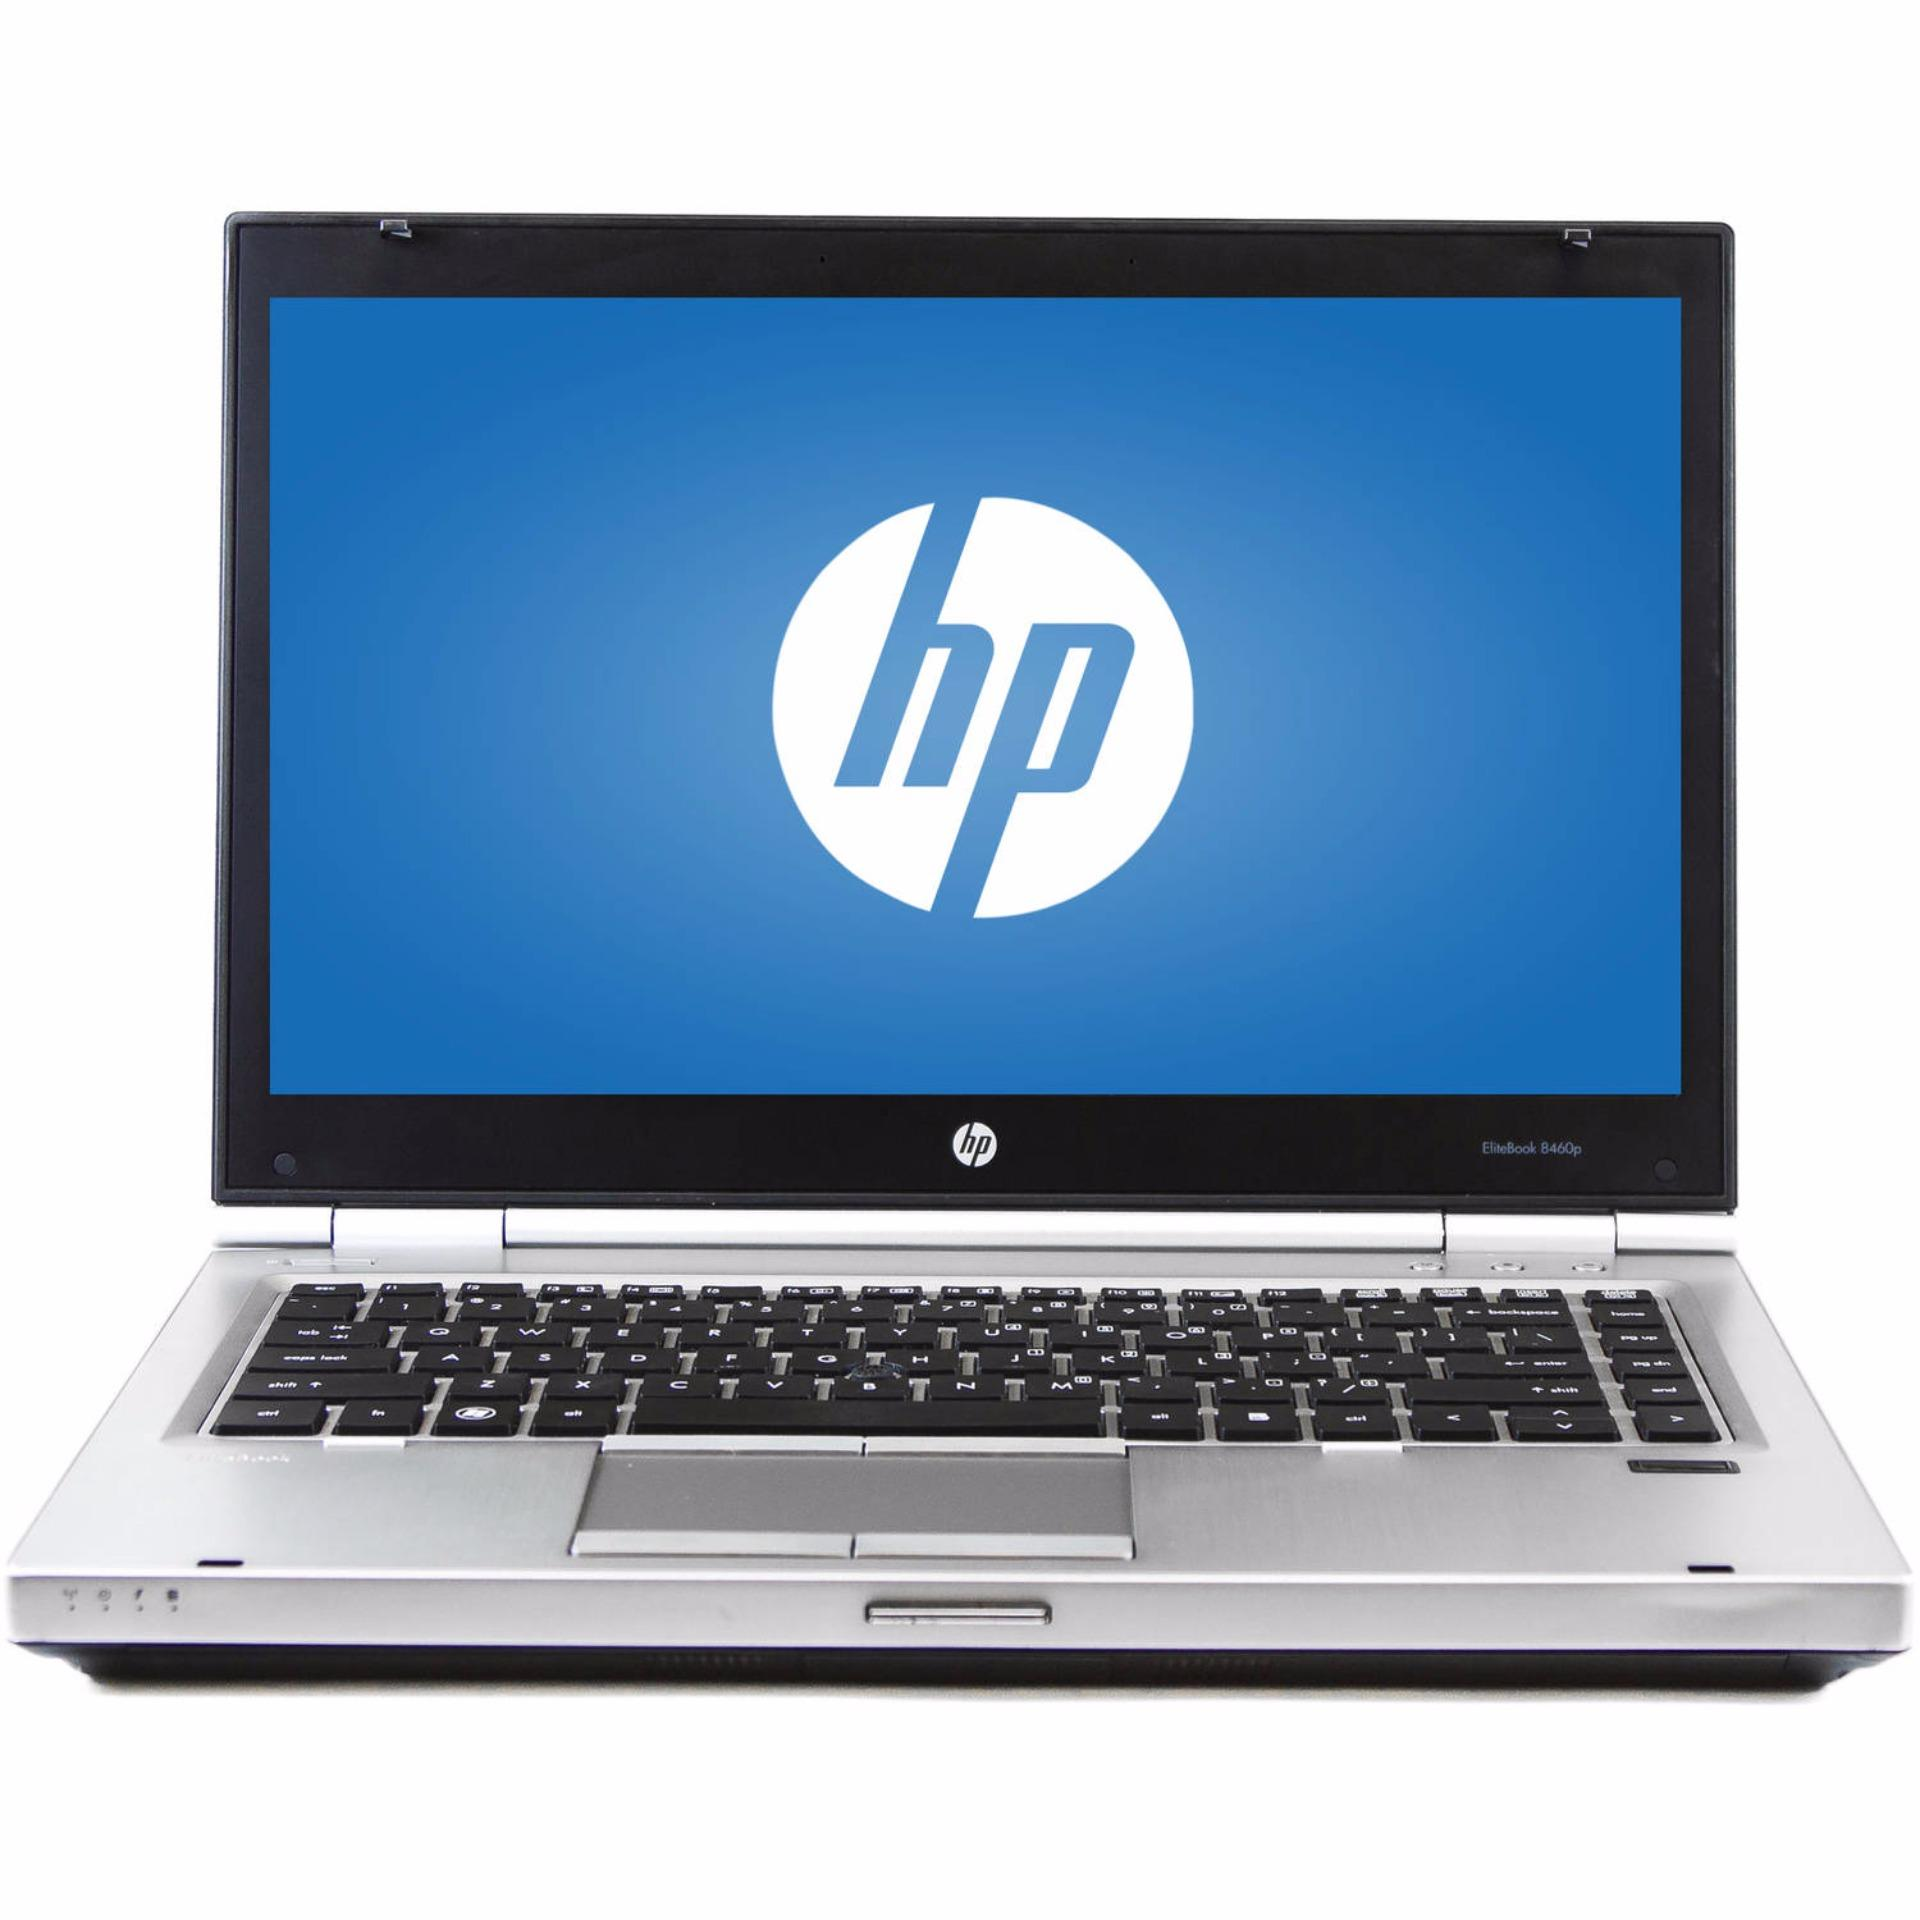 Shop bán Laptop HP EliteBook 8460p ( i7-2620M, 14inch, 8GB, SSD